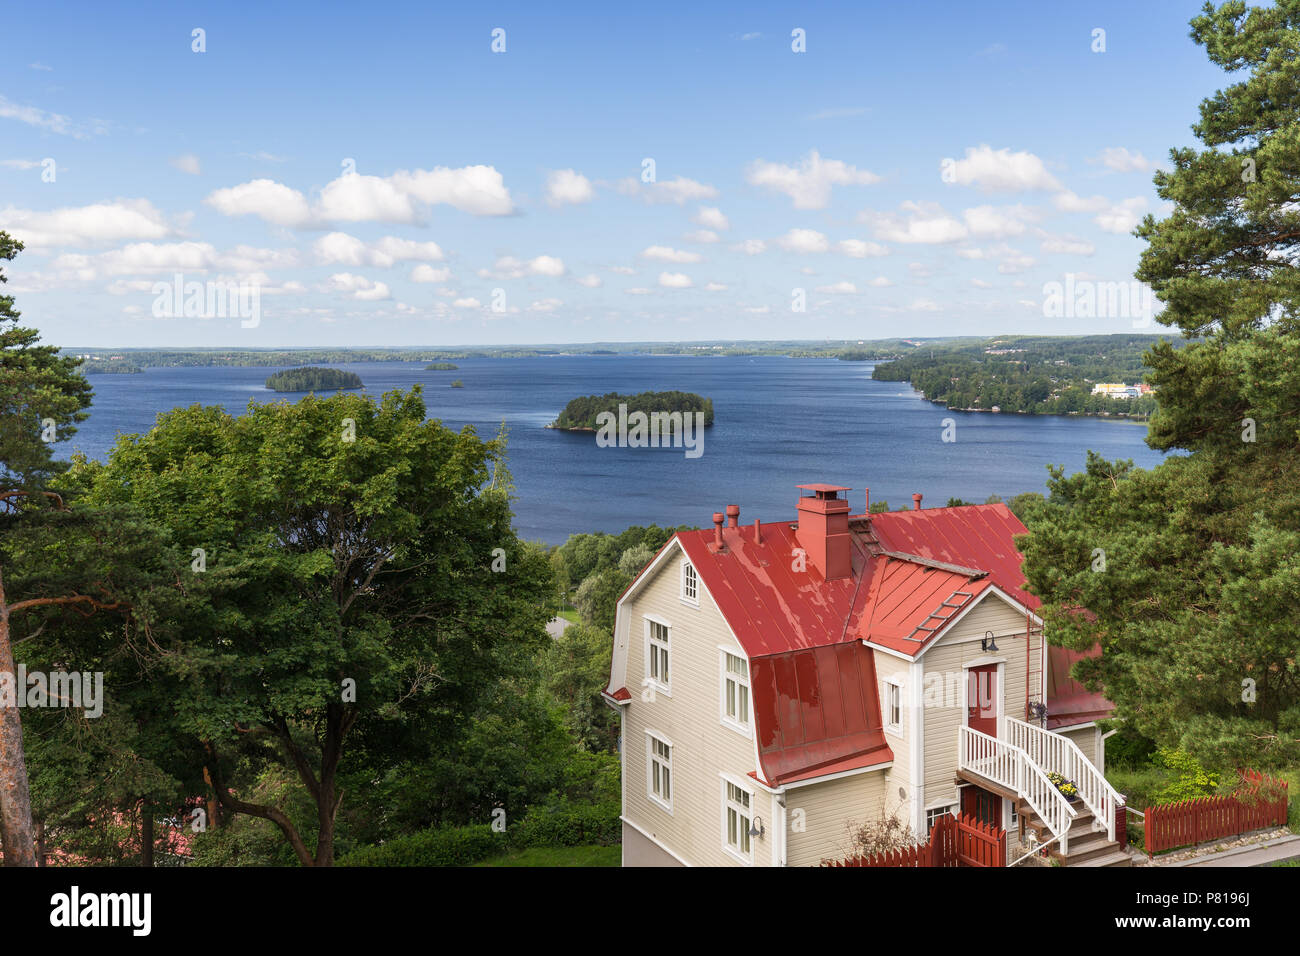 Scenic view of an old wooden house at the Pispala district and Lake Pyhäjärvi from above in Tampere, Finland, on a sunny day in summer. Copy space. - Stock Image